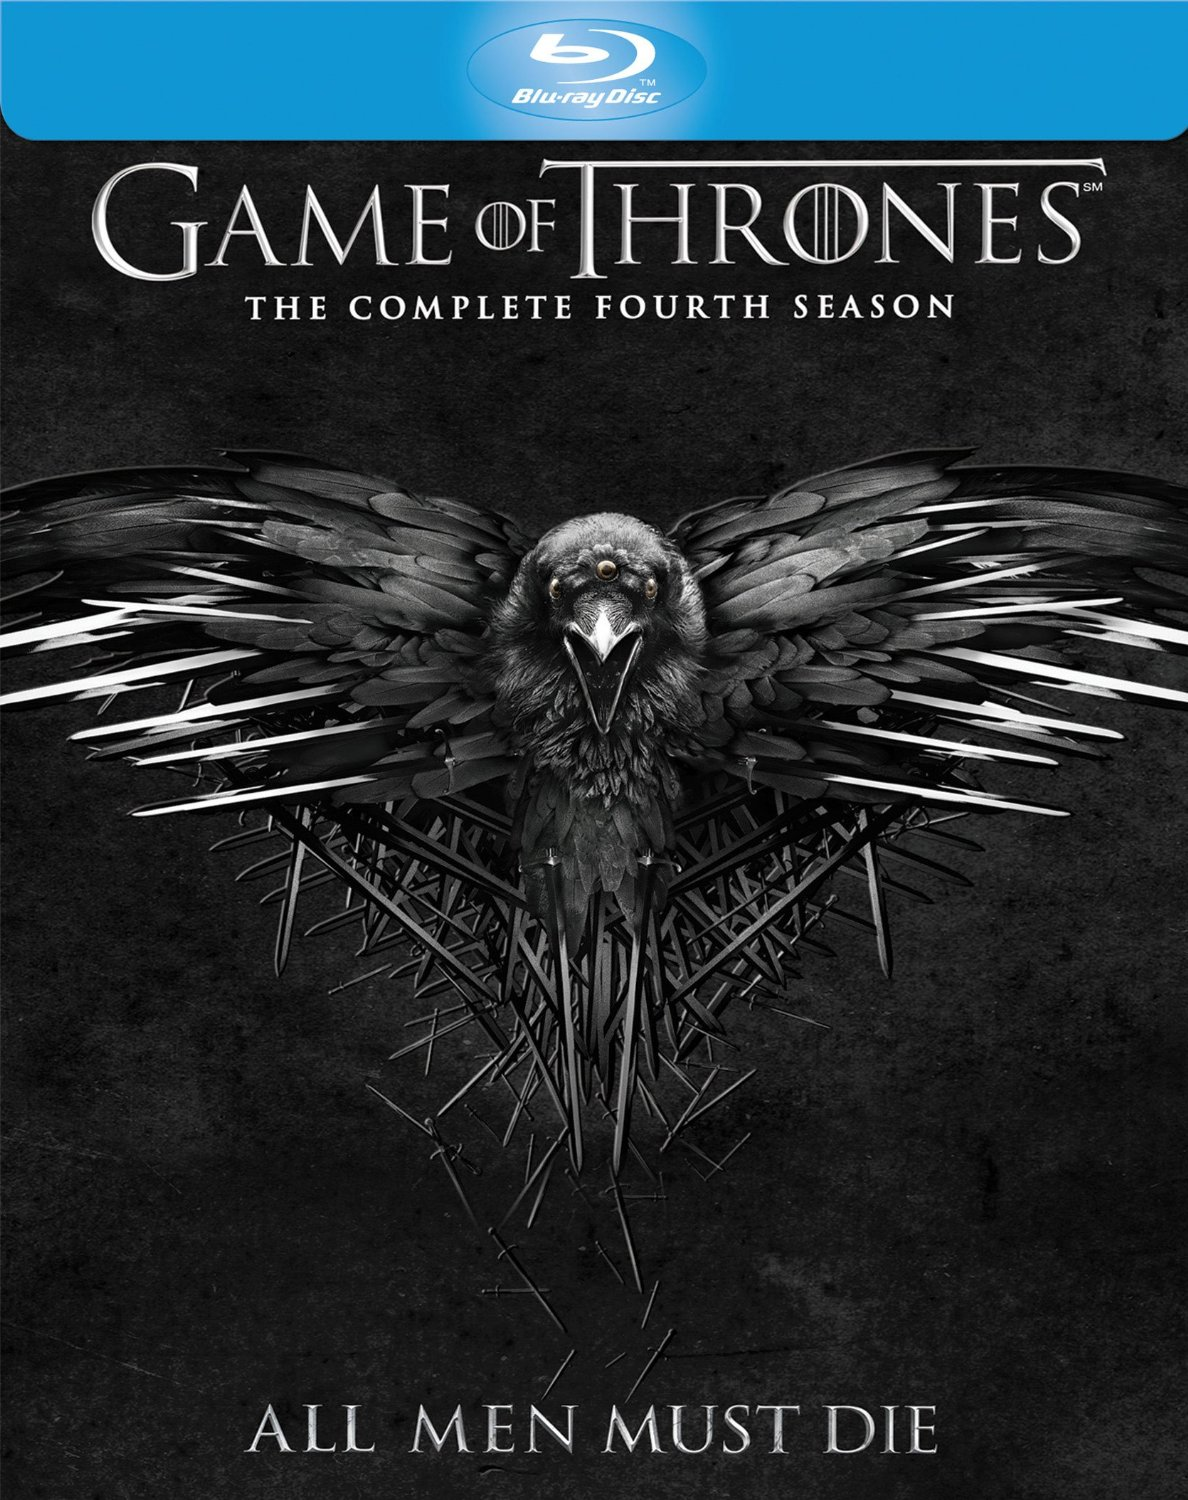 Game of Thrones - Season 4 - Blu-ray Cover